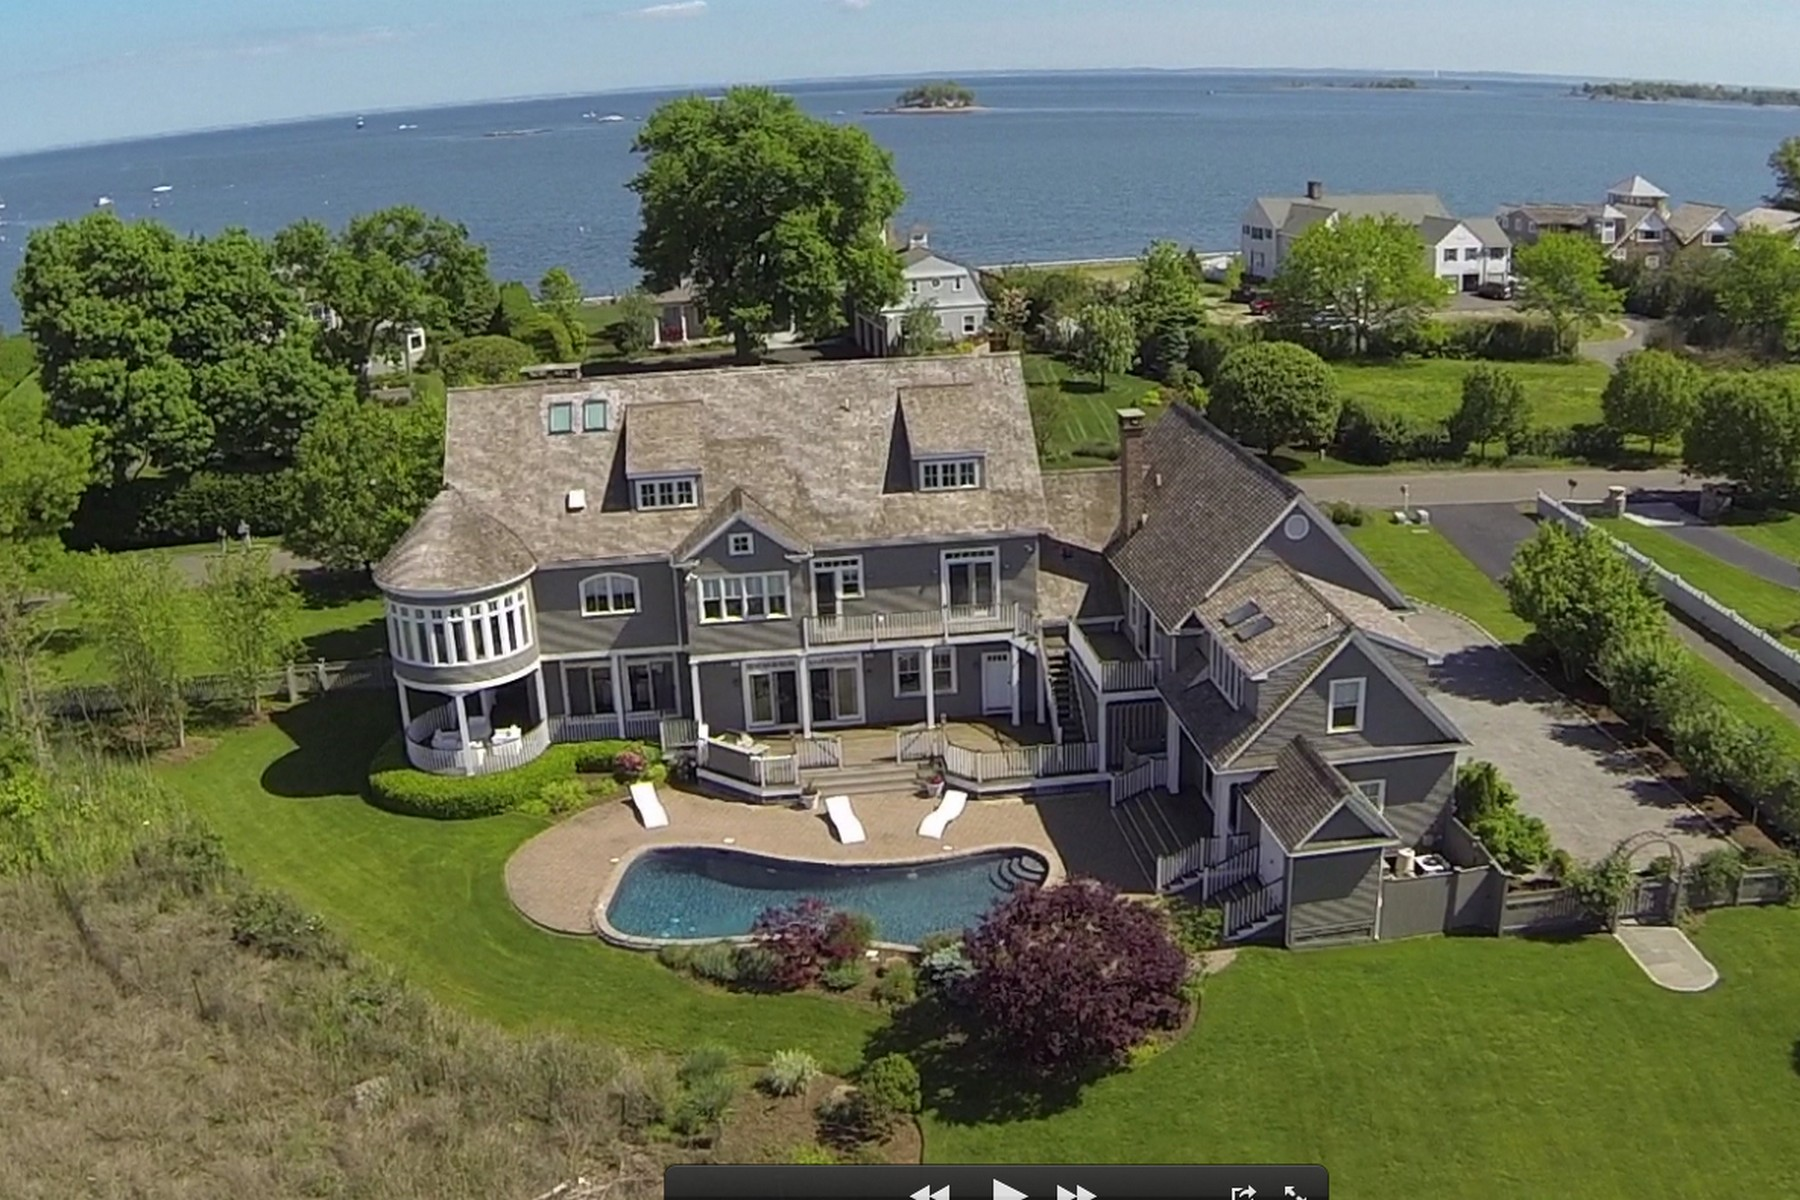 Casa Unifamiliar por un Venta en Seaside Retreat 7 Shorehaven Road Norwalk, Connecticut, 06855 Estados Unidos